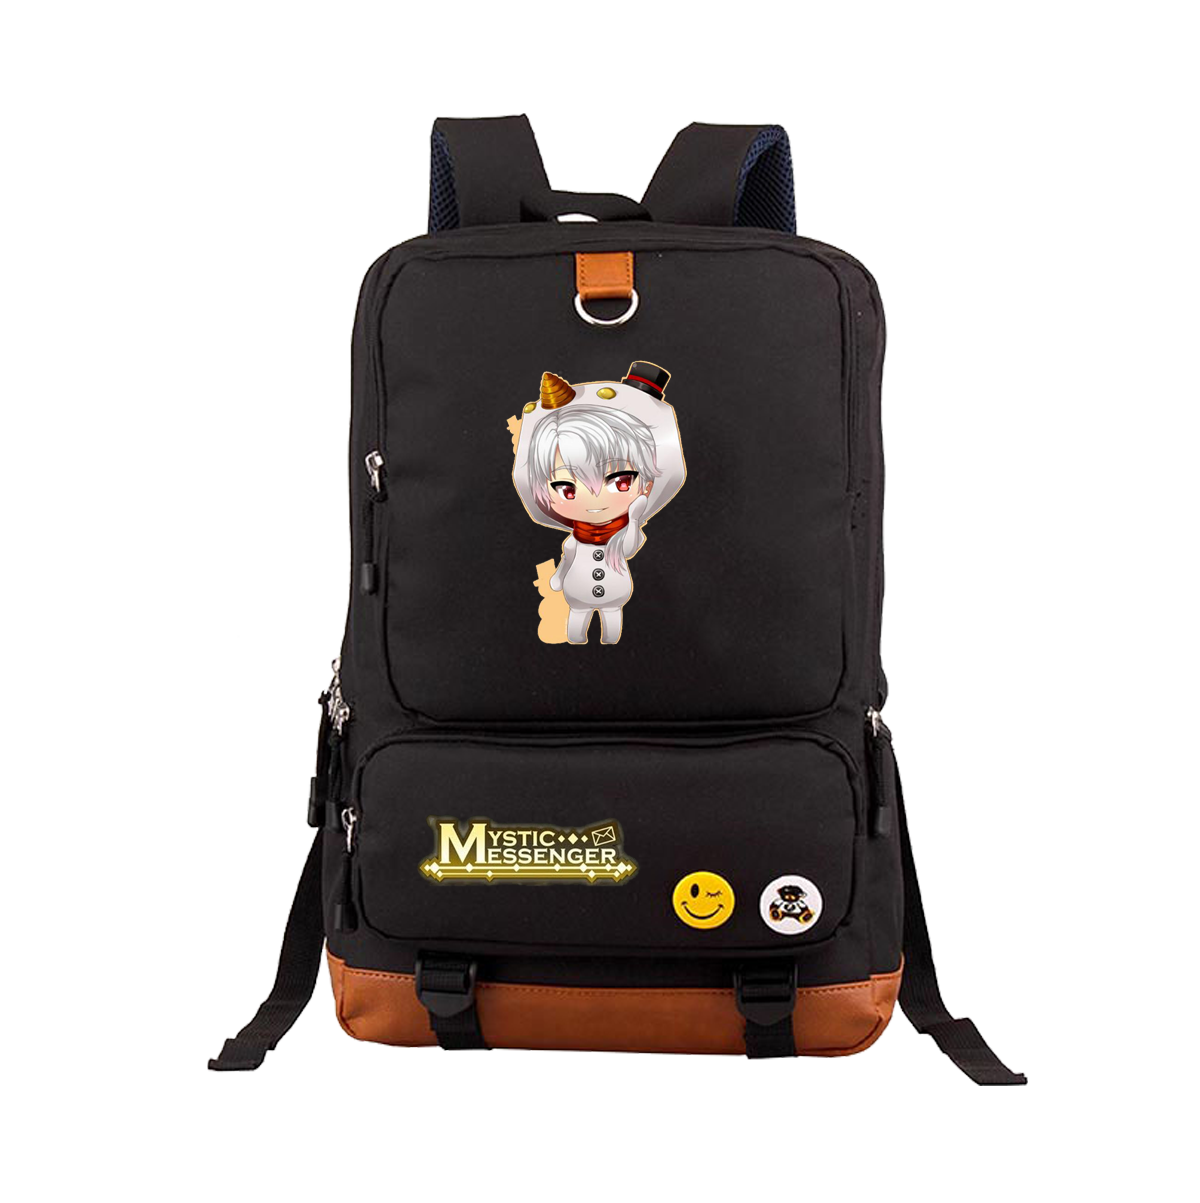 Game mystery messenger backpack junior high school students backpack leisure travel backpack computer mens and womens bags